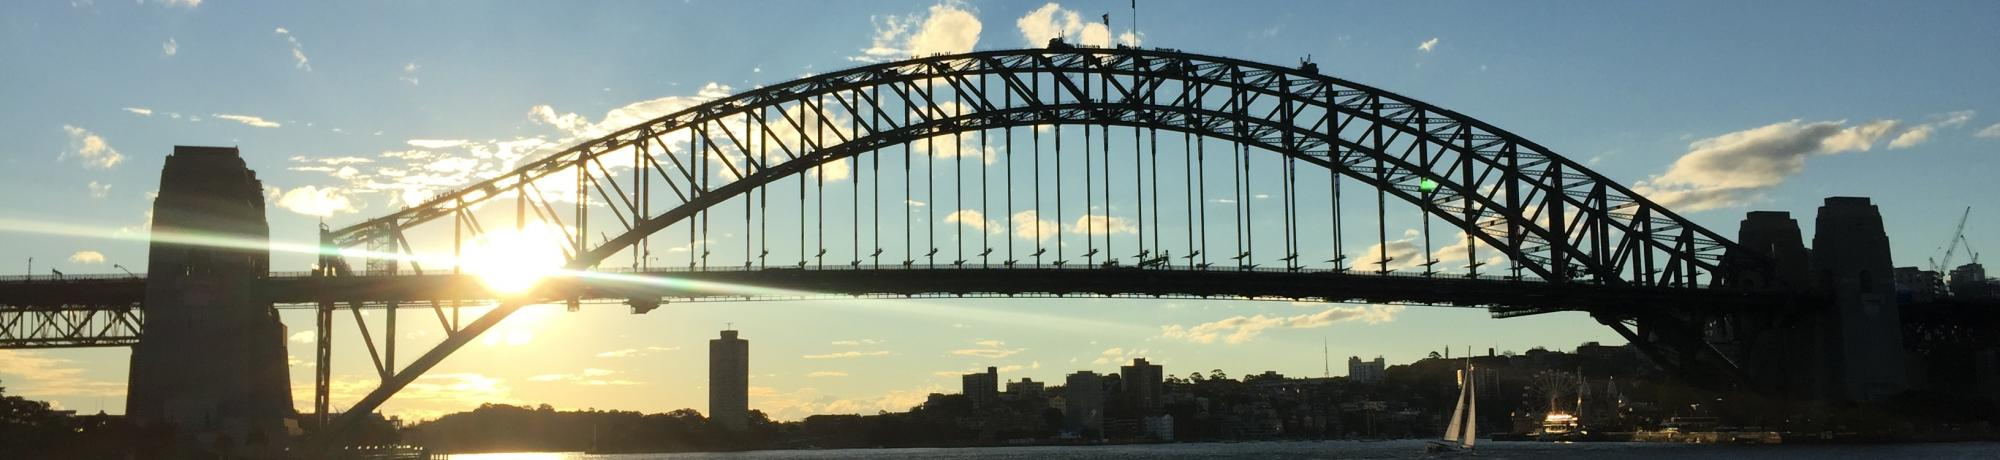 UC Davis Study Abroad, Summer Internship Abroad Australia, Engineering in Sydney Program, Header Image, Placements Page